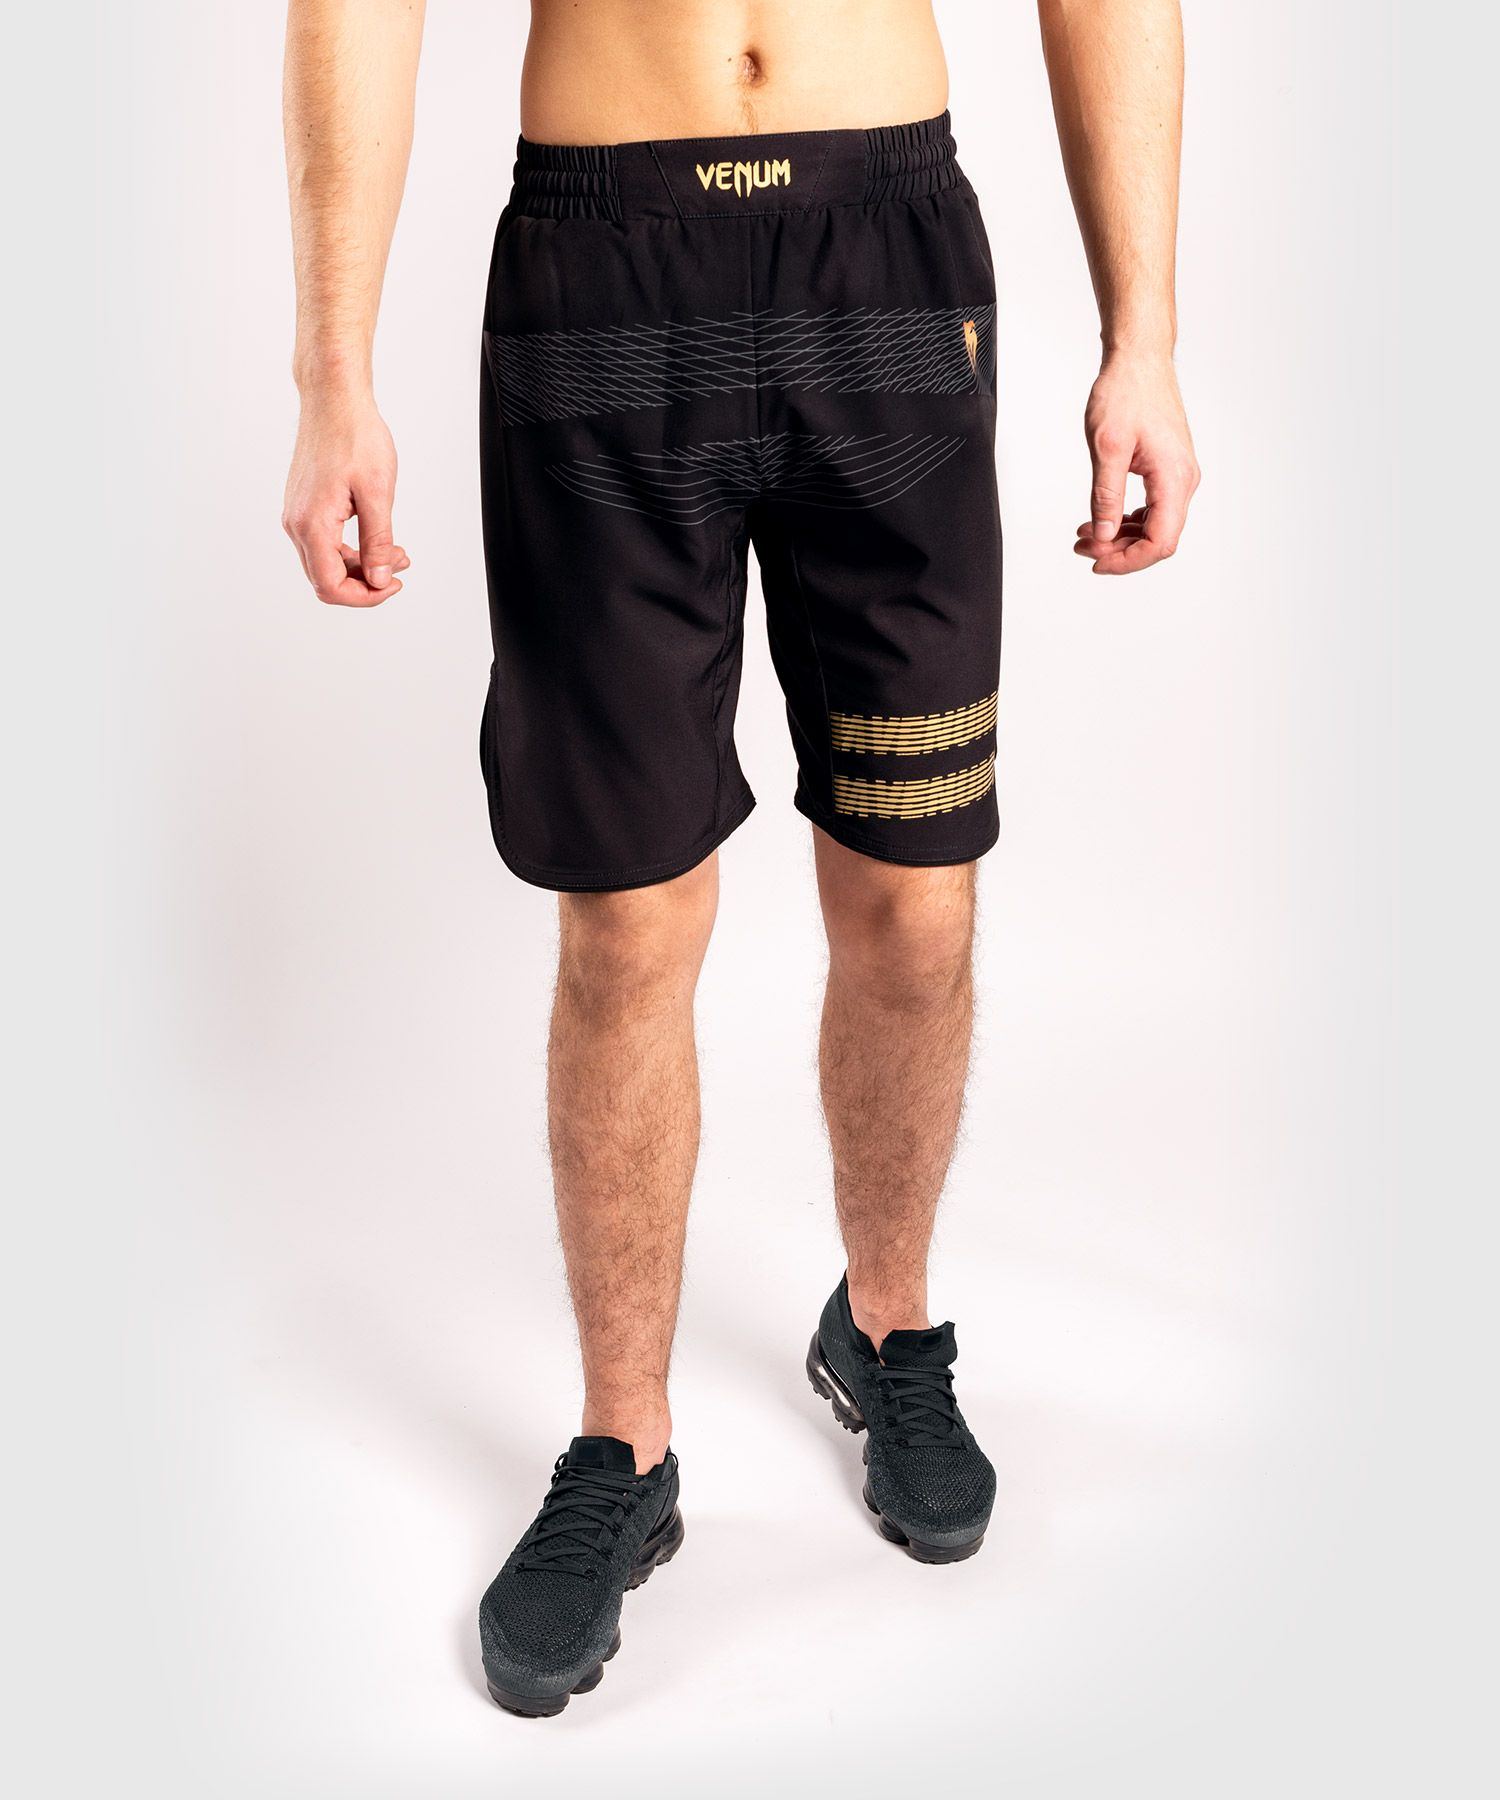 Venum Club 182 Trainingsshorts - Schwarz/Gold